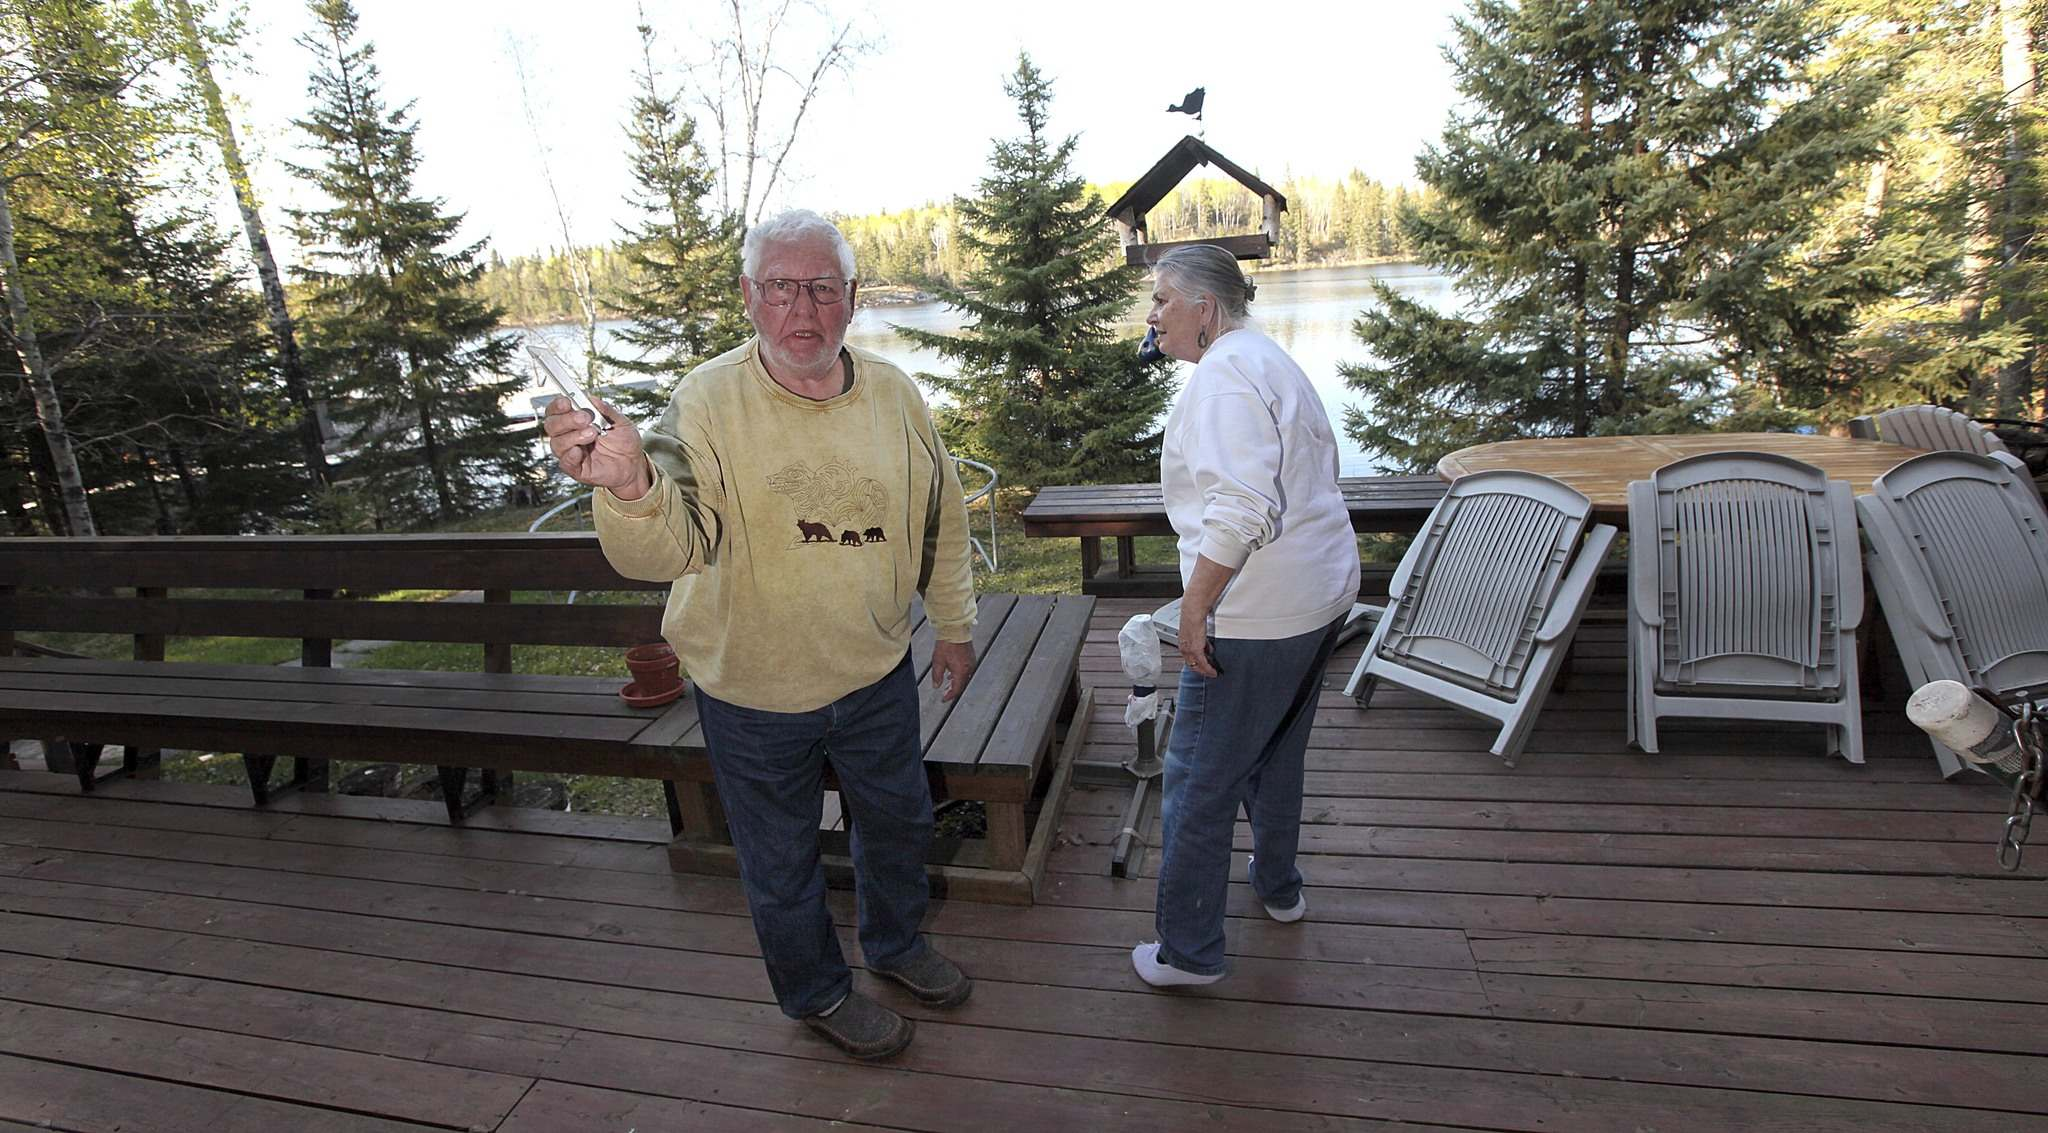 PHIL HOSSACK / WINNIPEG FREE PRESS</p><p>Hardy and Elke May check out their Caddy Lake cottage for damage after returning Tuesday, finding none except a broken piece of a sprinkler the local fire department had already taken down from their rooftop.</p>